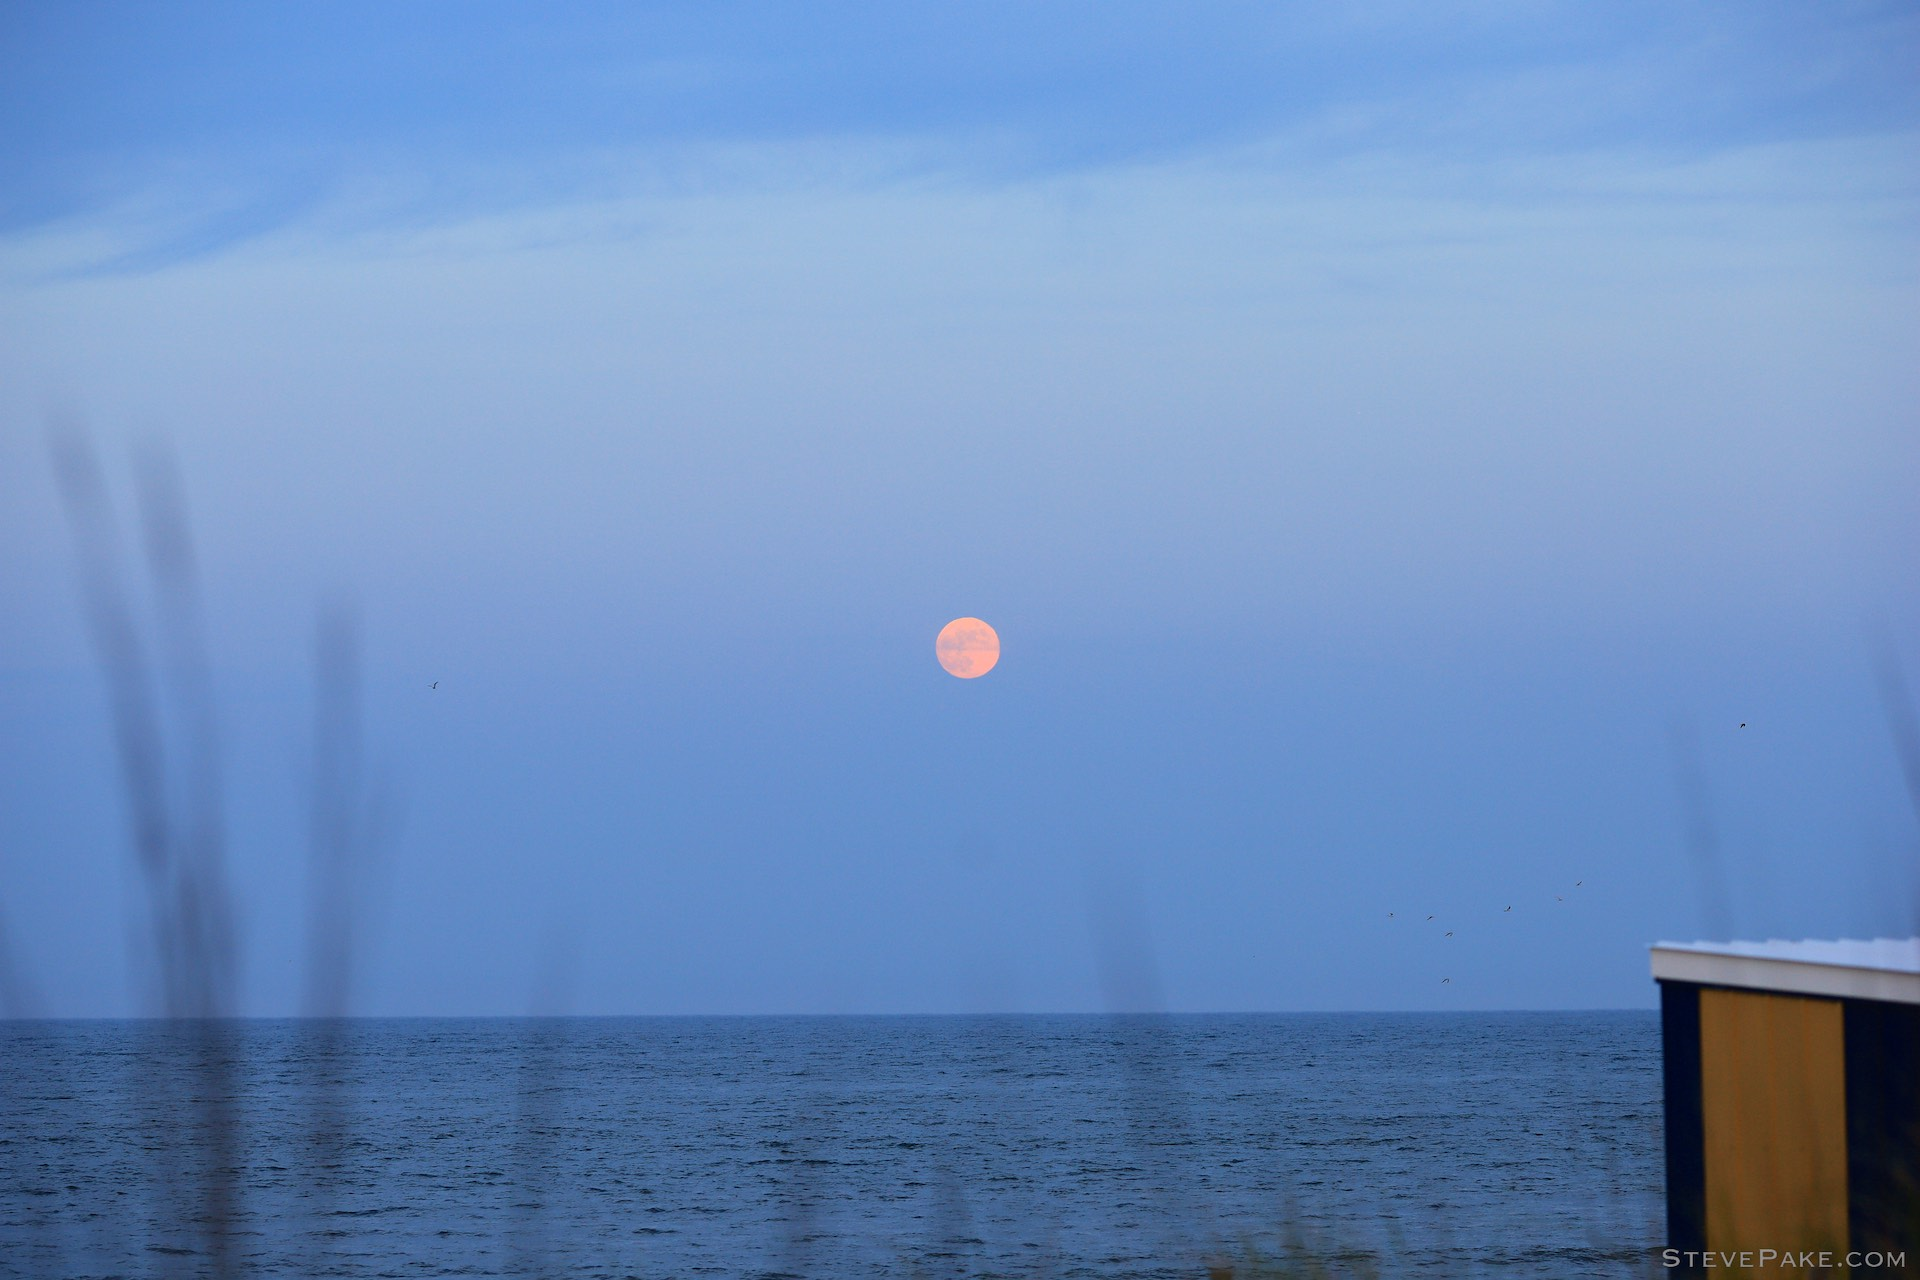 Moonrise with the 135L at f/4, 1/160s, and ISO 250.